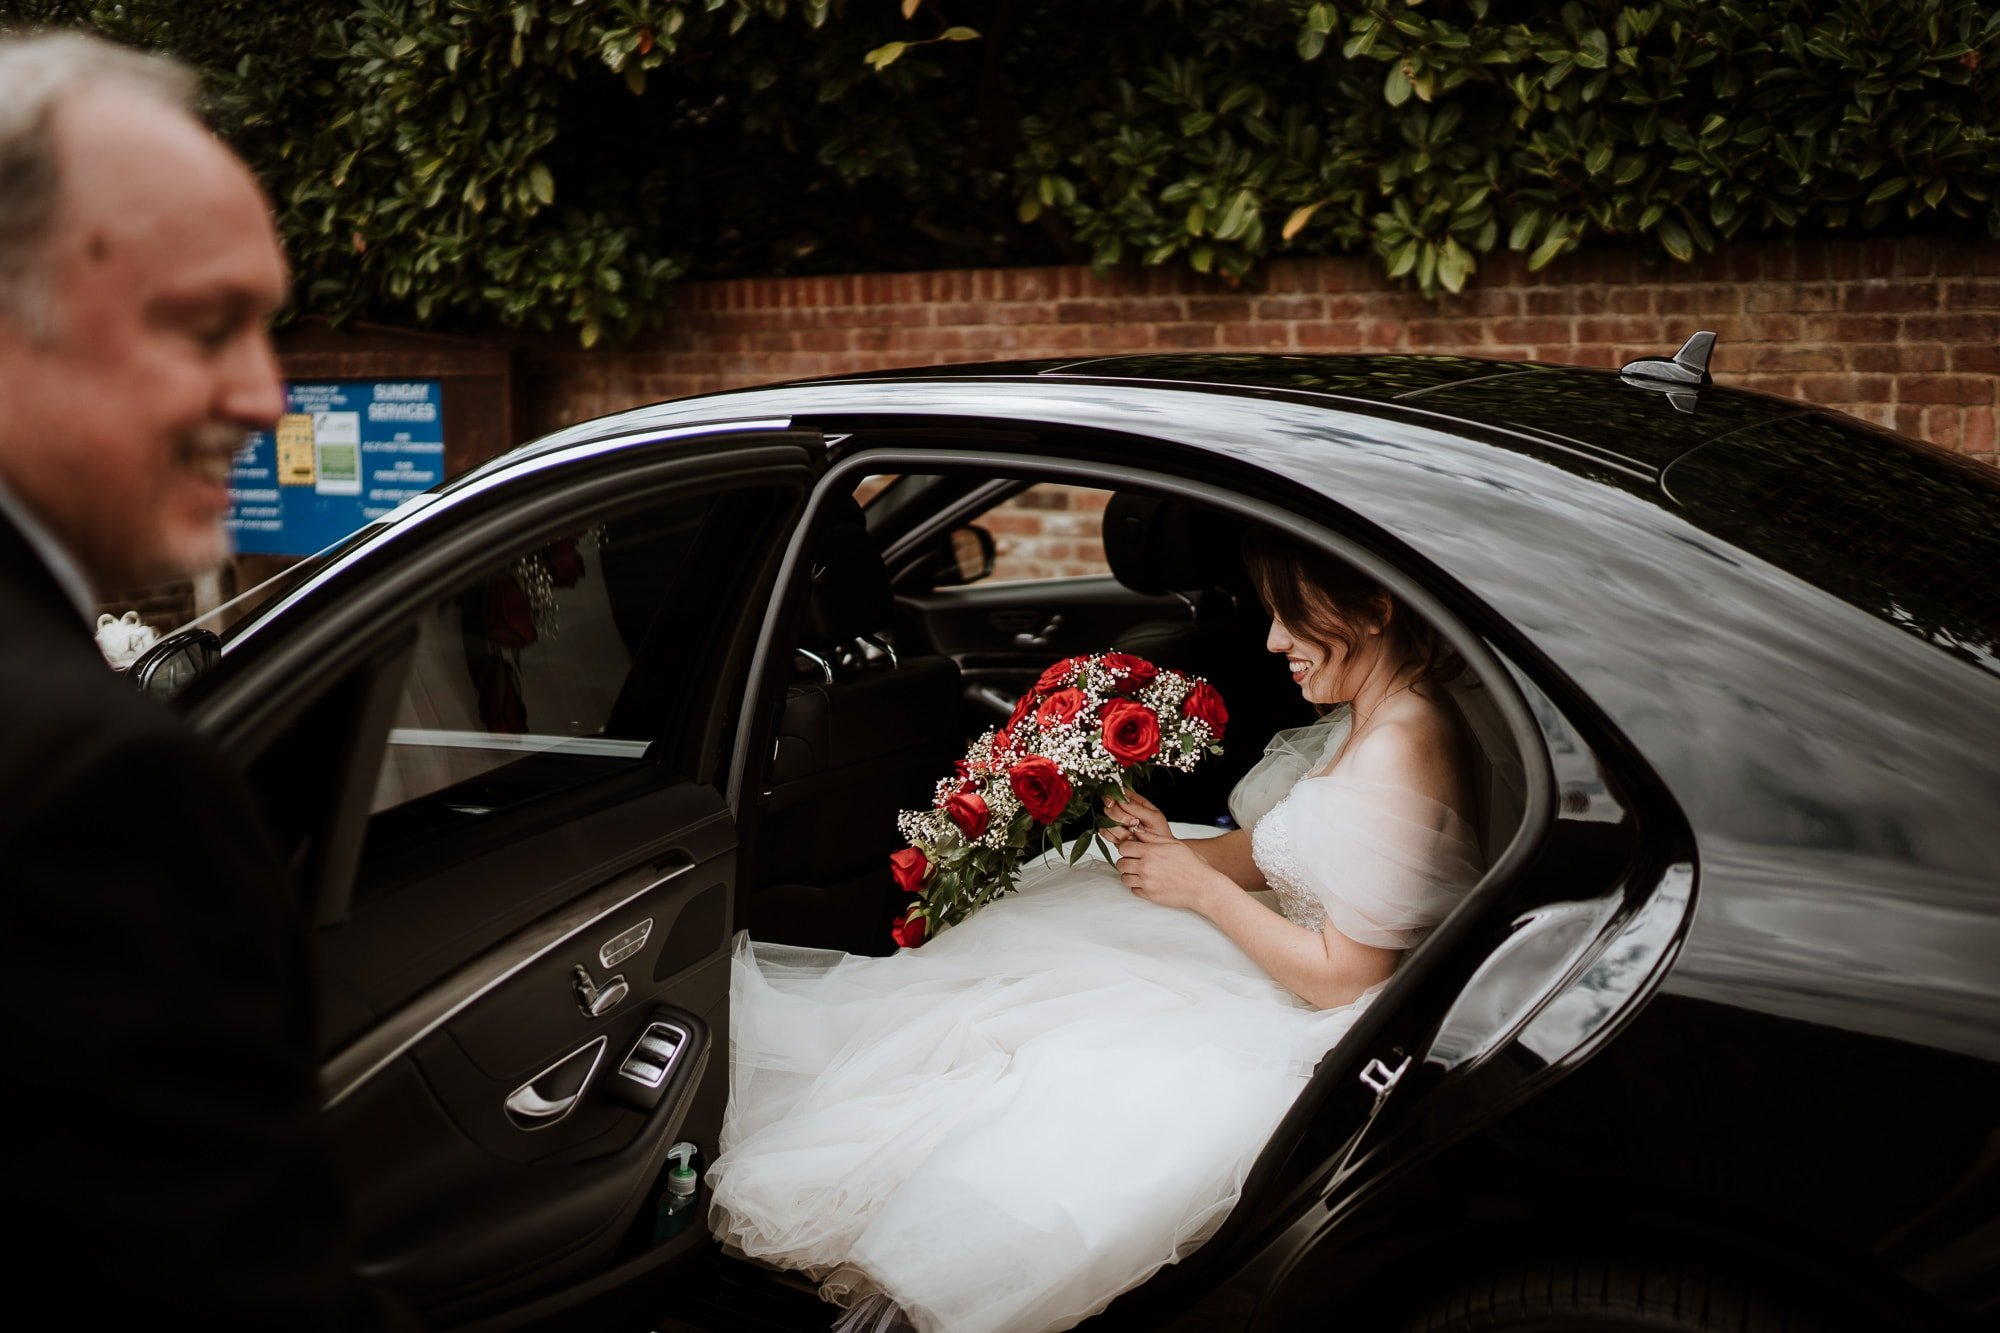 Bride arriving in the wedding car holding her red rose bouquet